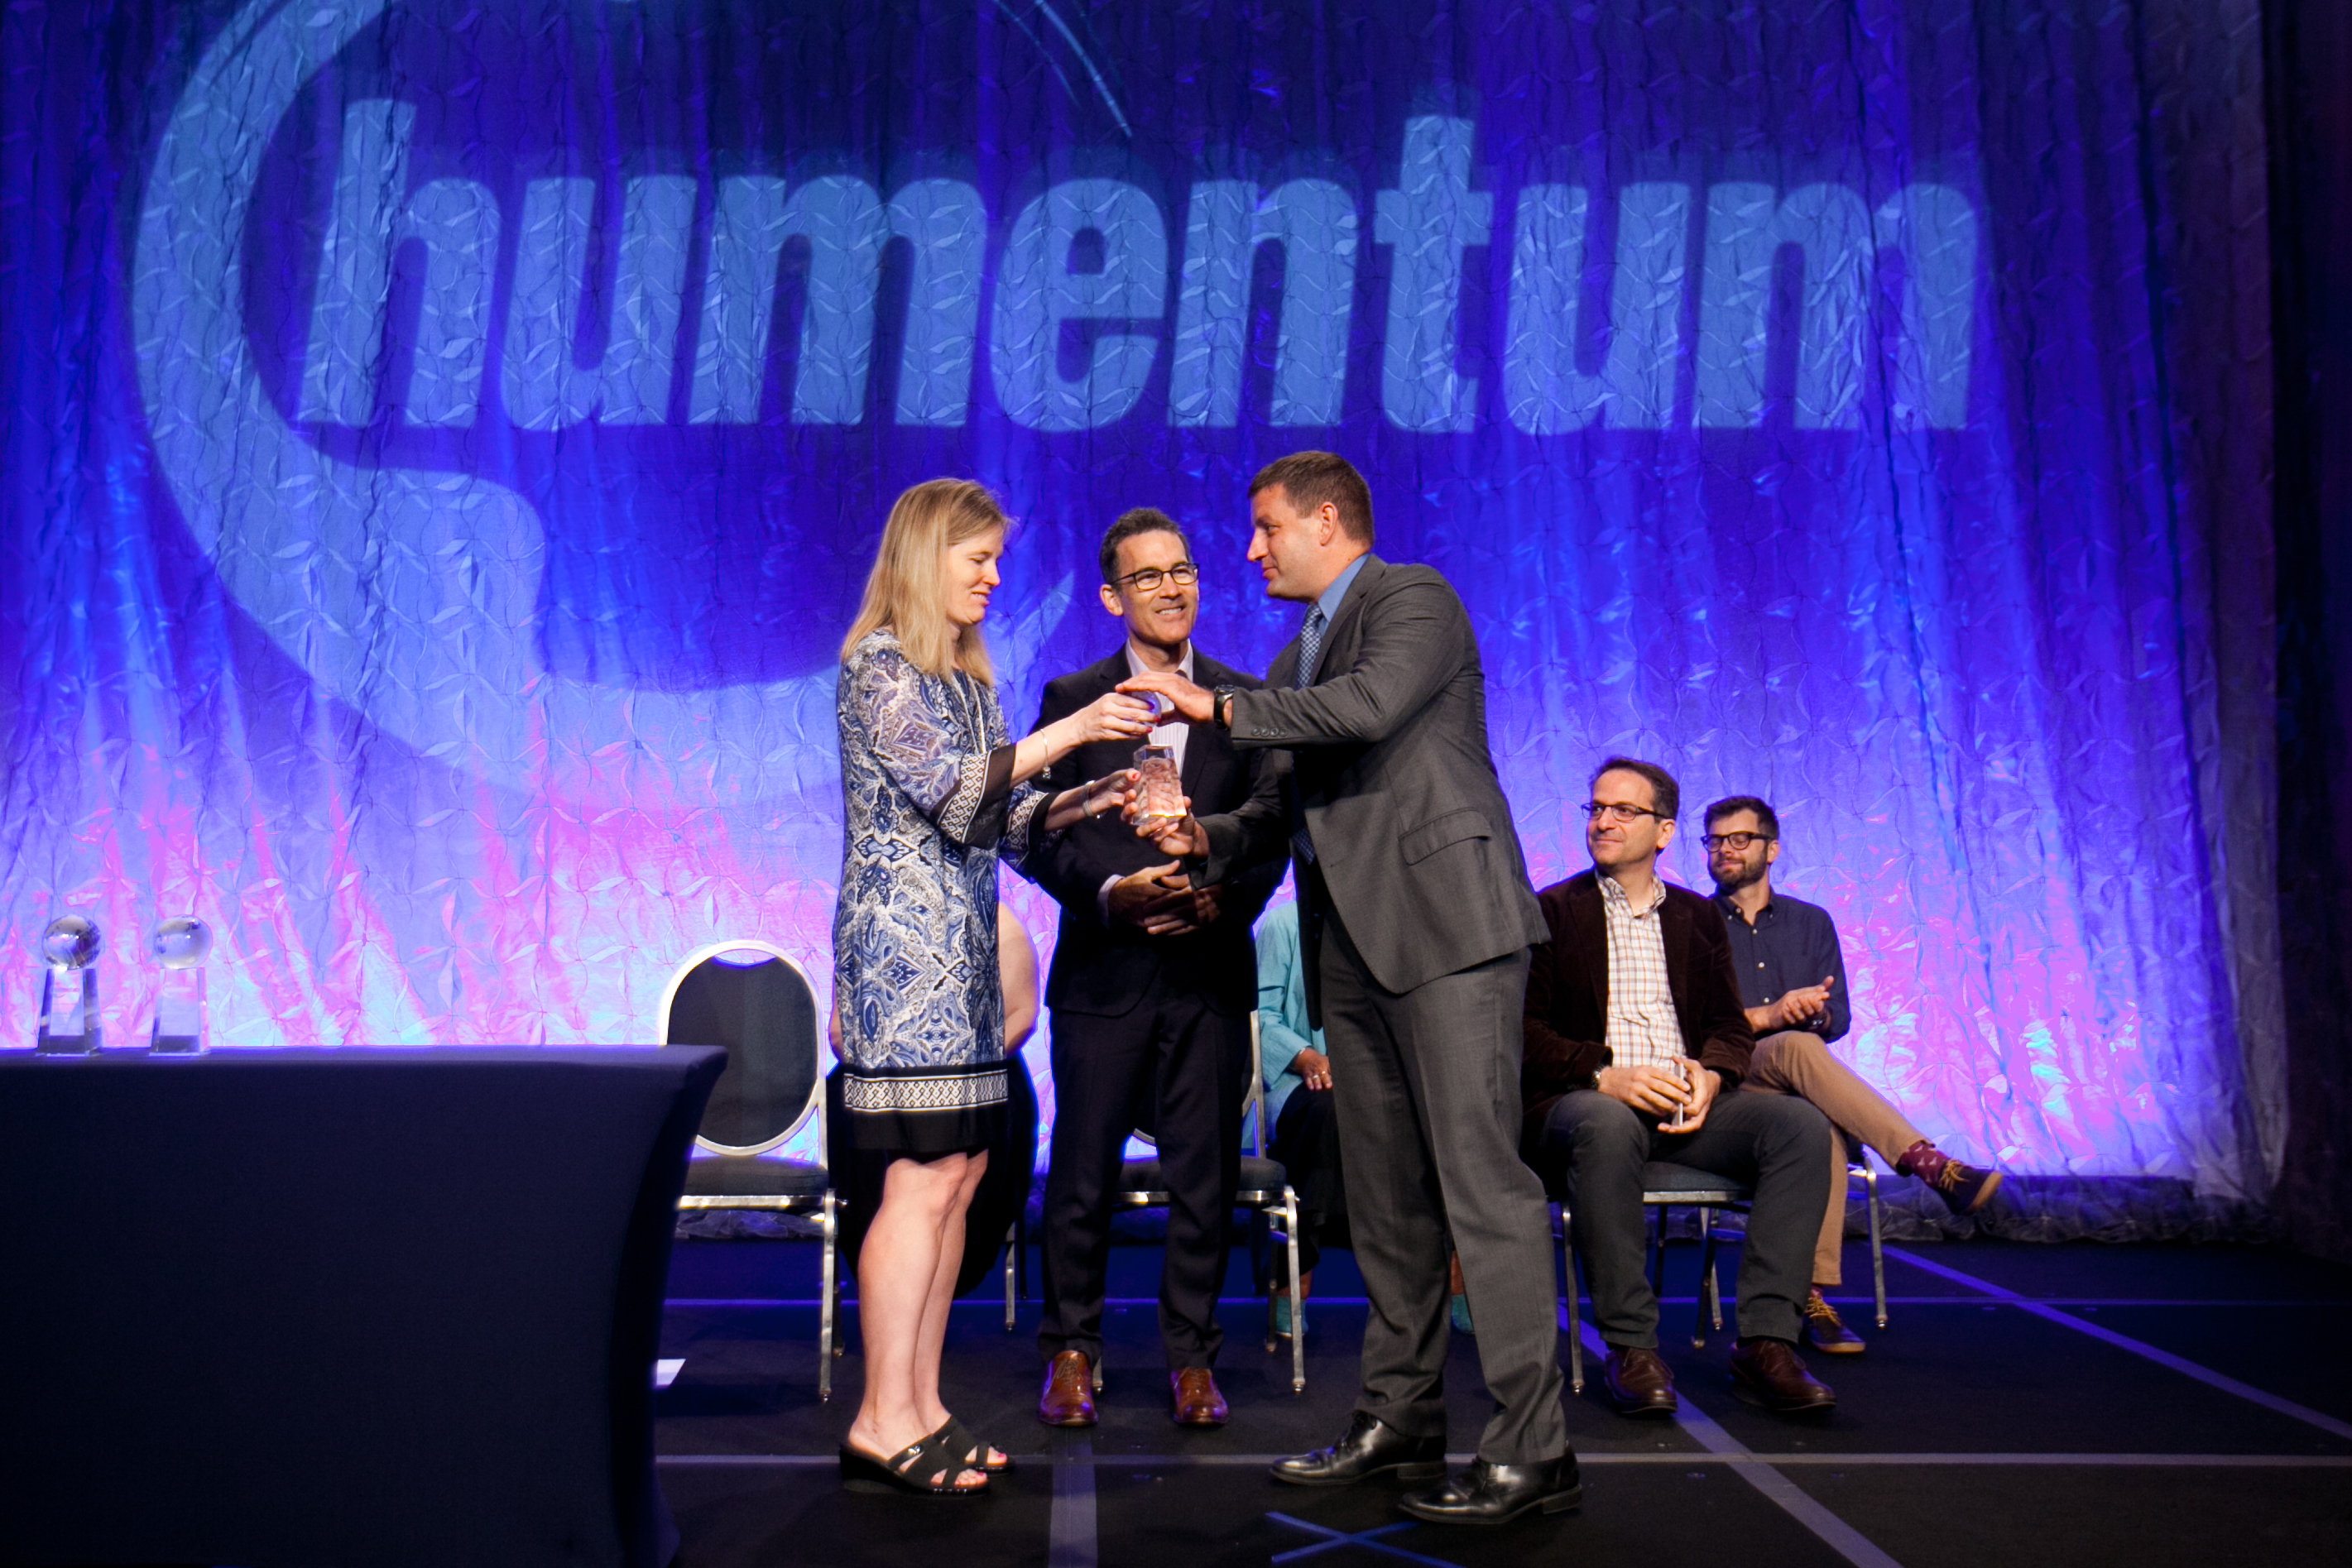 Brian von Kraus receives the Operational Excellence Award at the Humentum recognition breakfast in Washington, DC on July 27th.